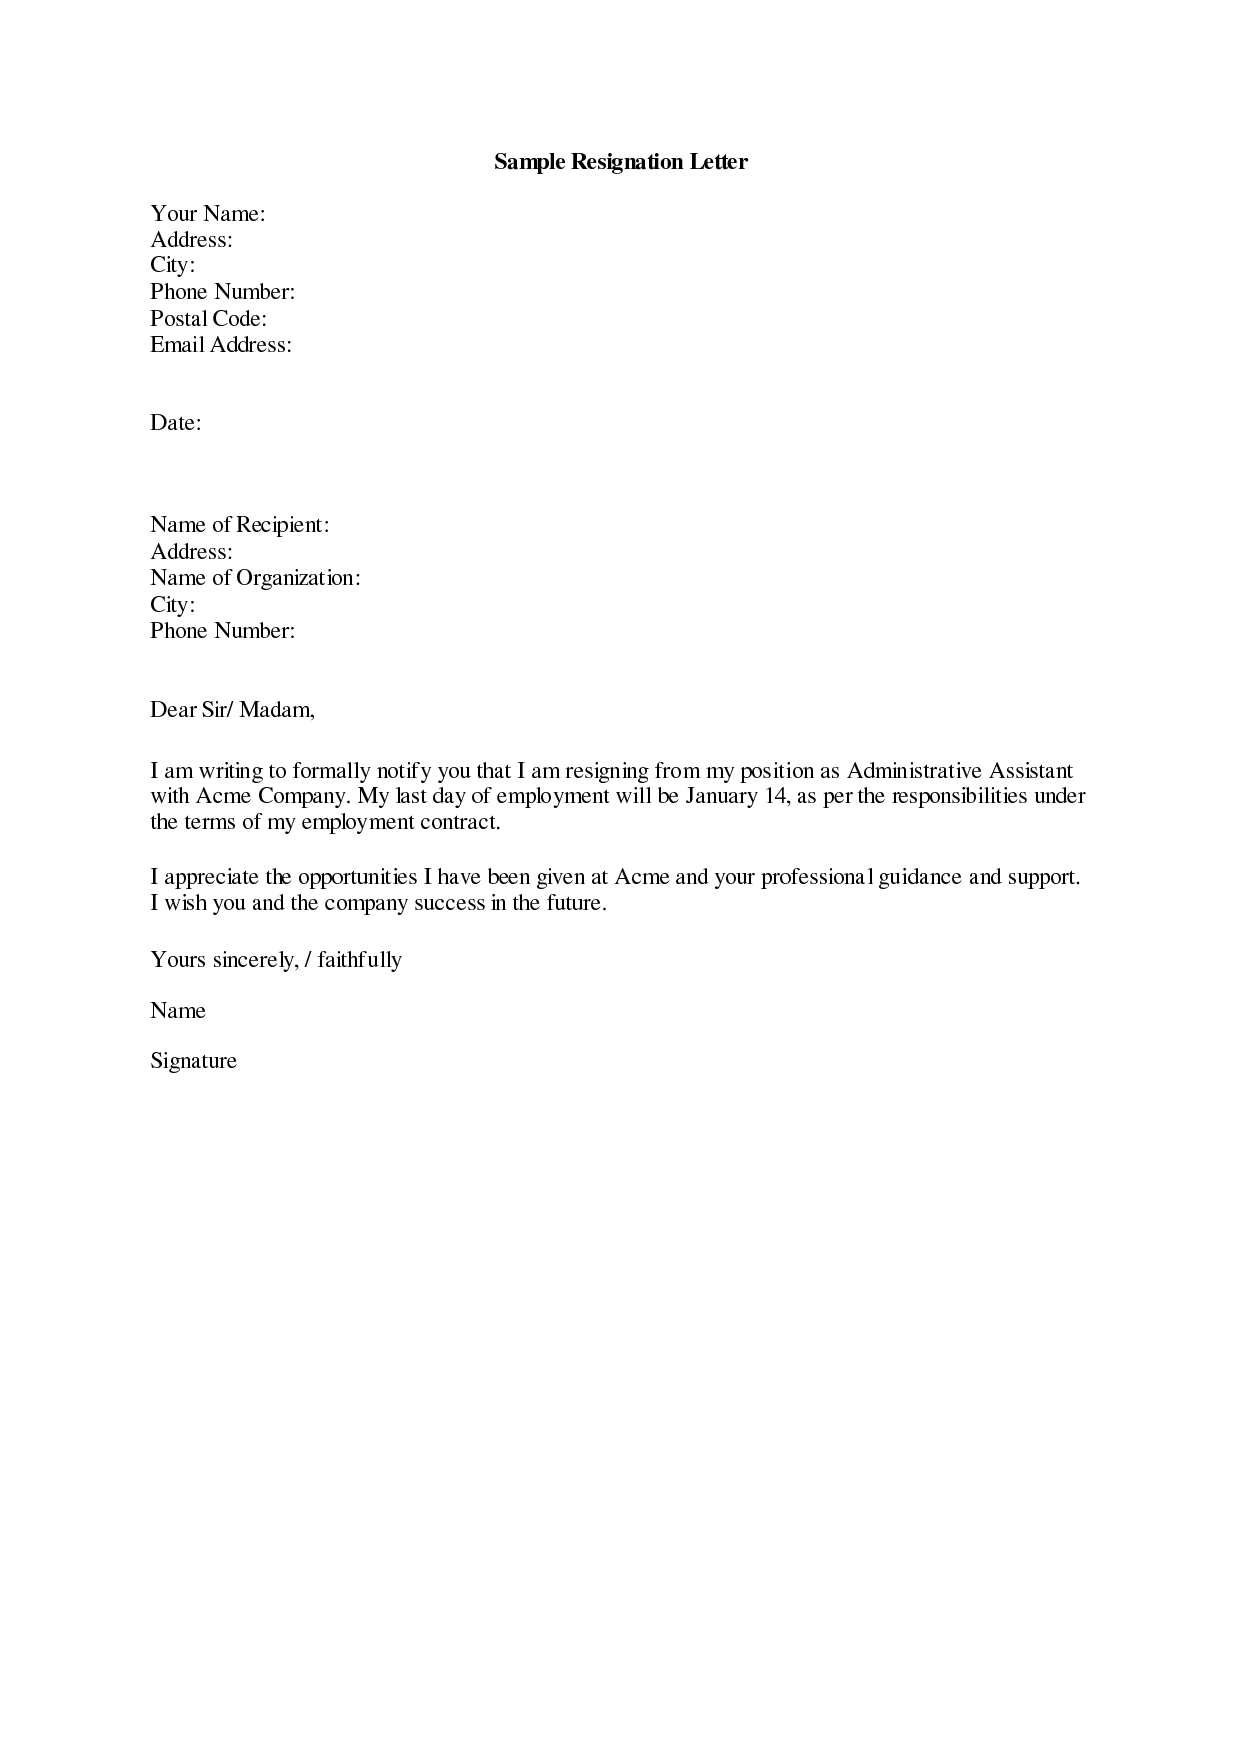 Resignation letter sample 19 letter of resignation ankit letter of resignation samples template seeabruzzoresignation letter sample business letter sample expocarfo